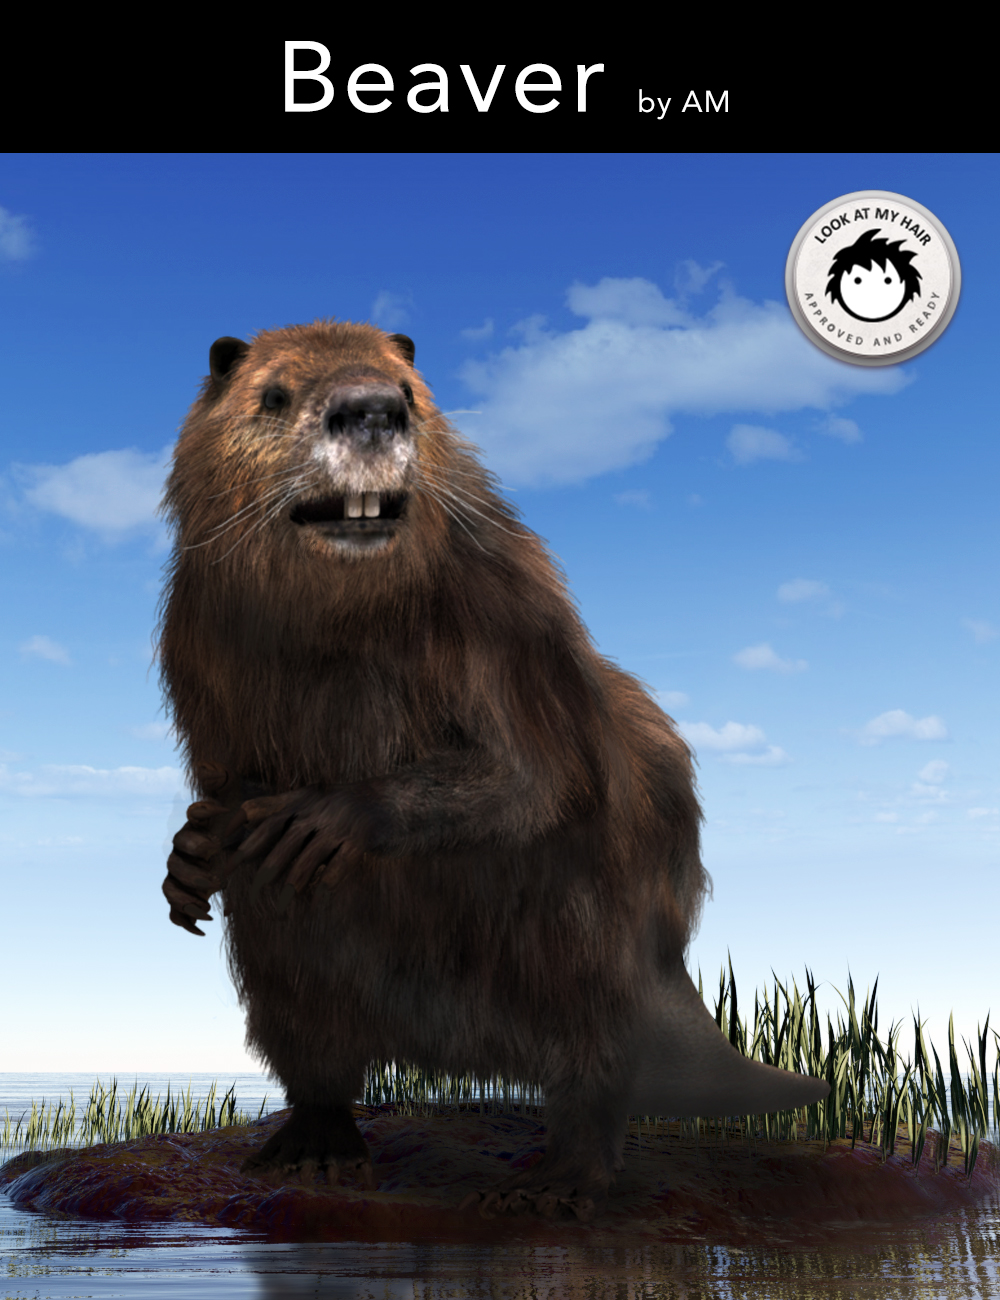 Beaver by AM by: Alessandro_AM, 3D Models by Daz 3D